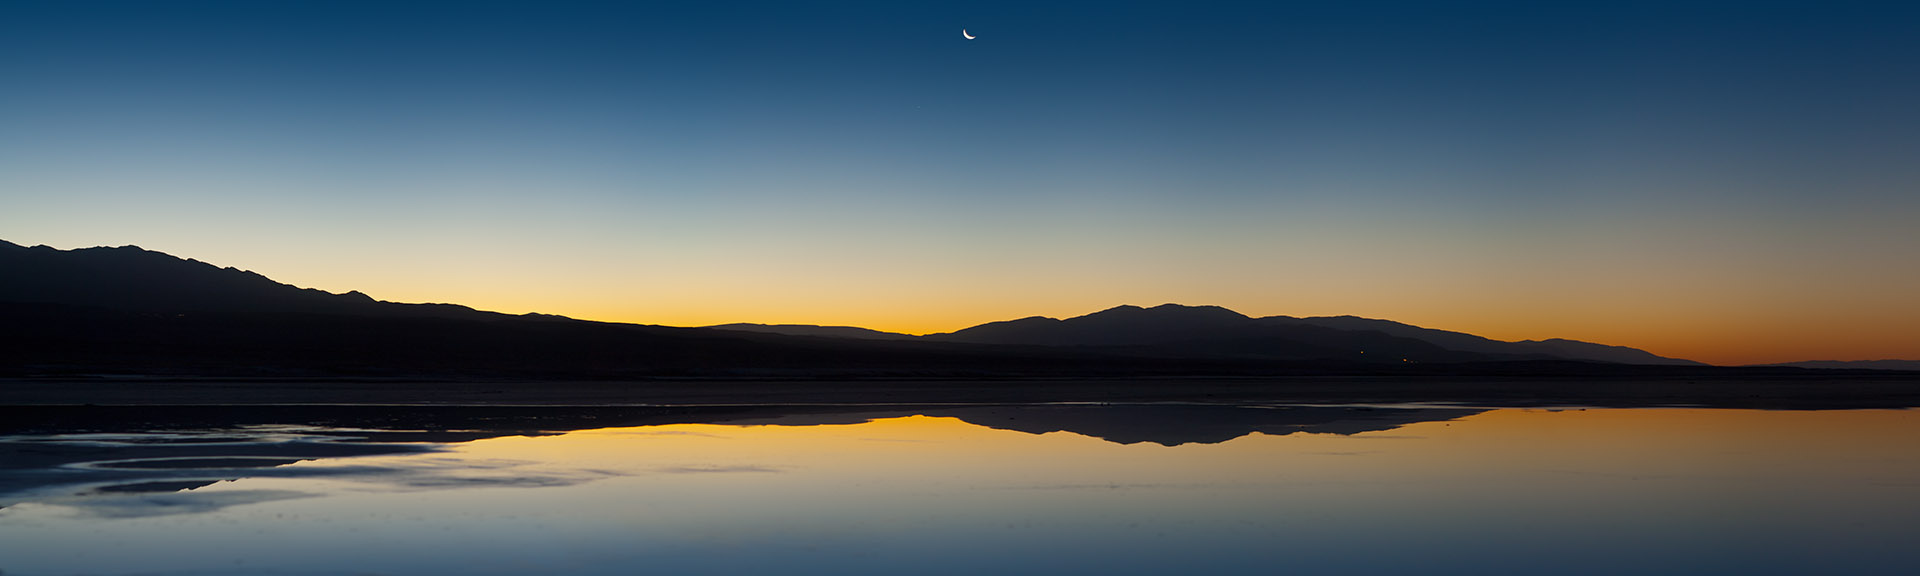 Death Valley Dawn, Photography, Rich Frishman